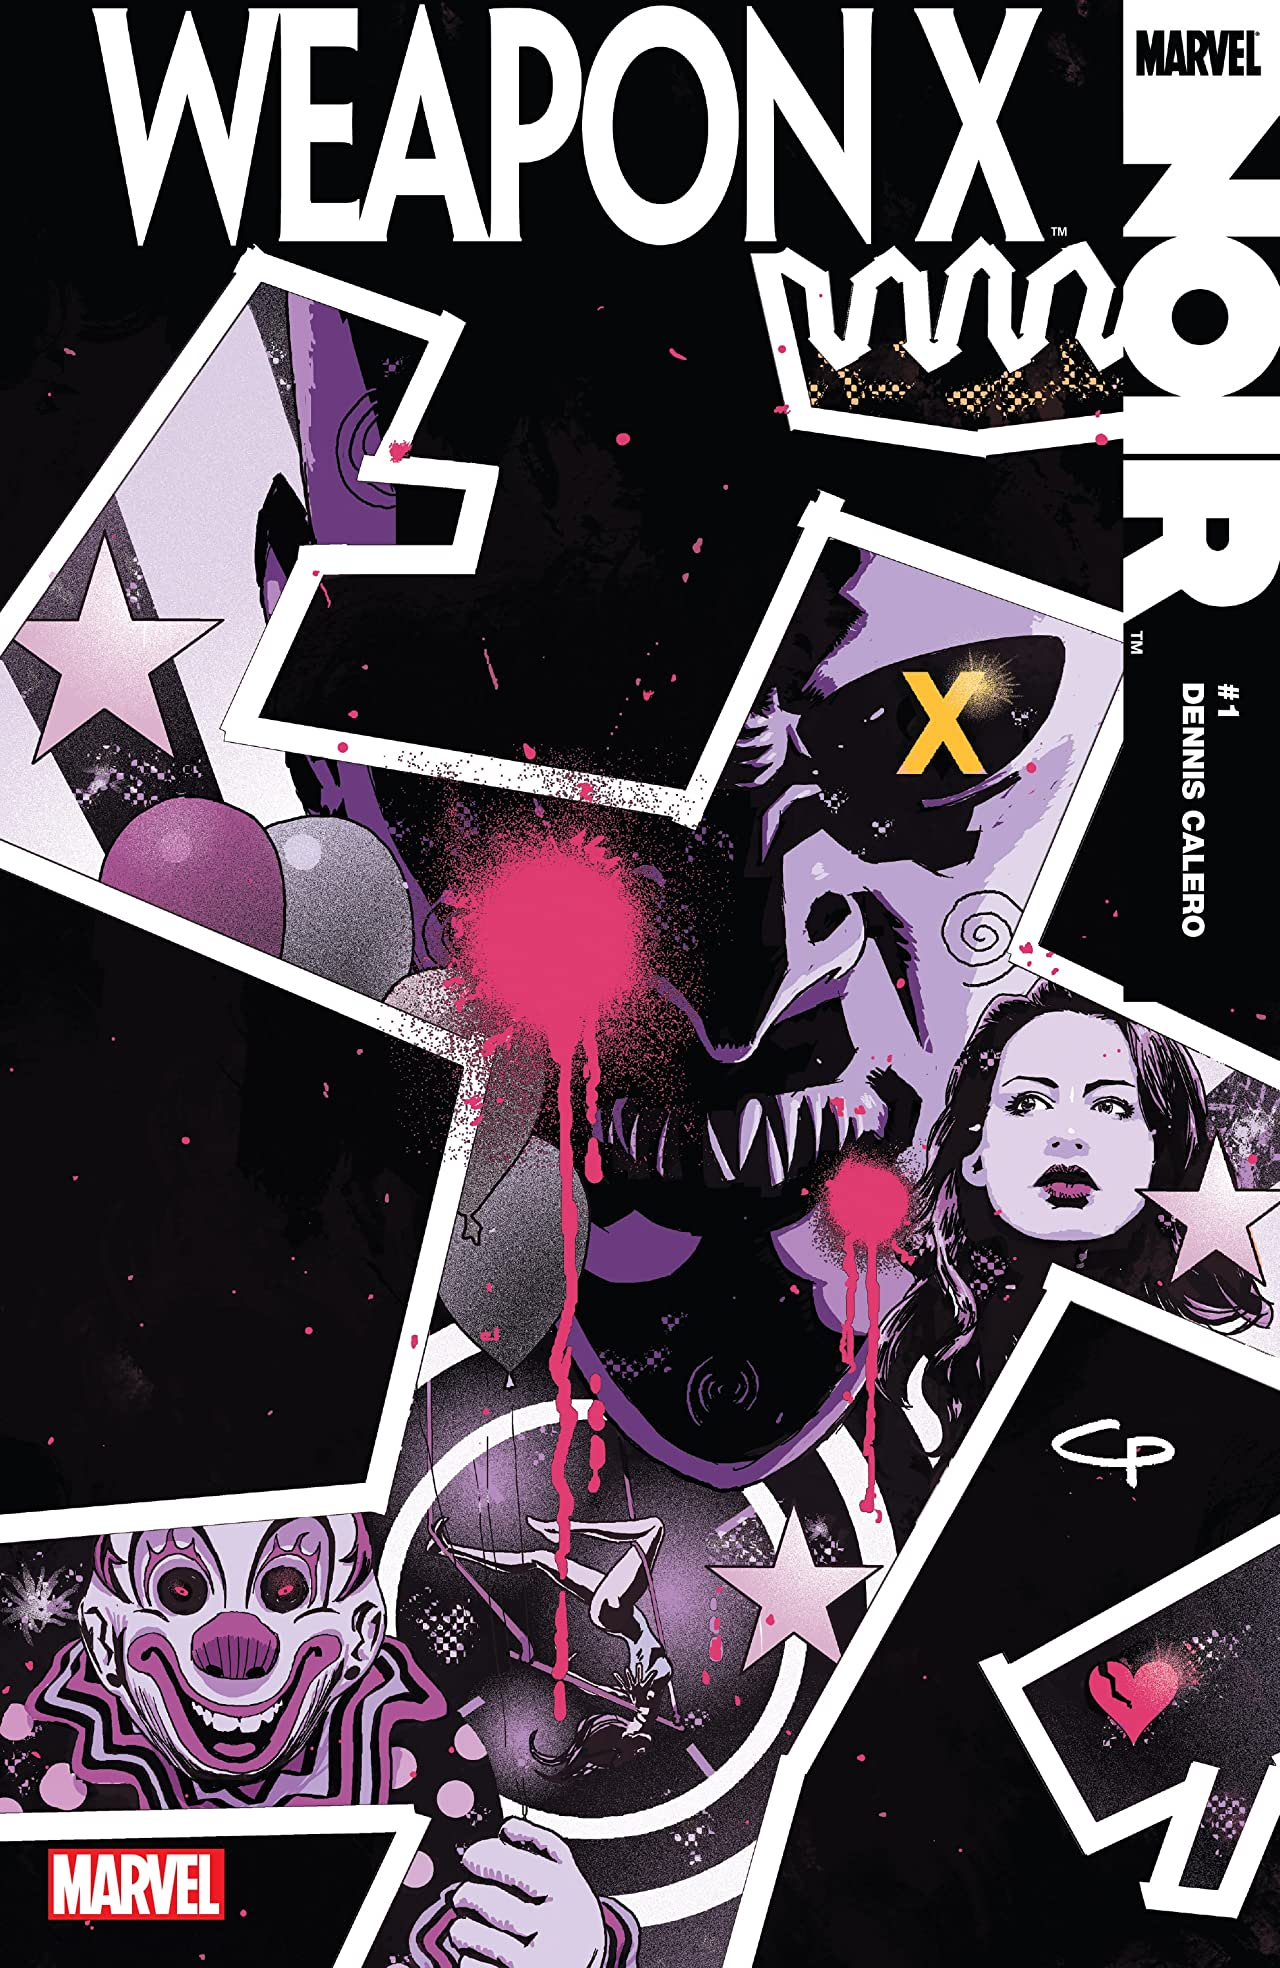 Weapon X Noir (2010) #1